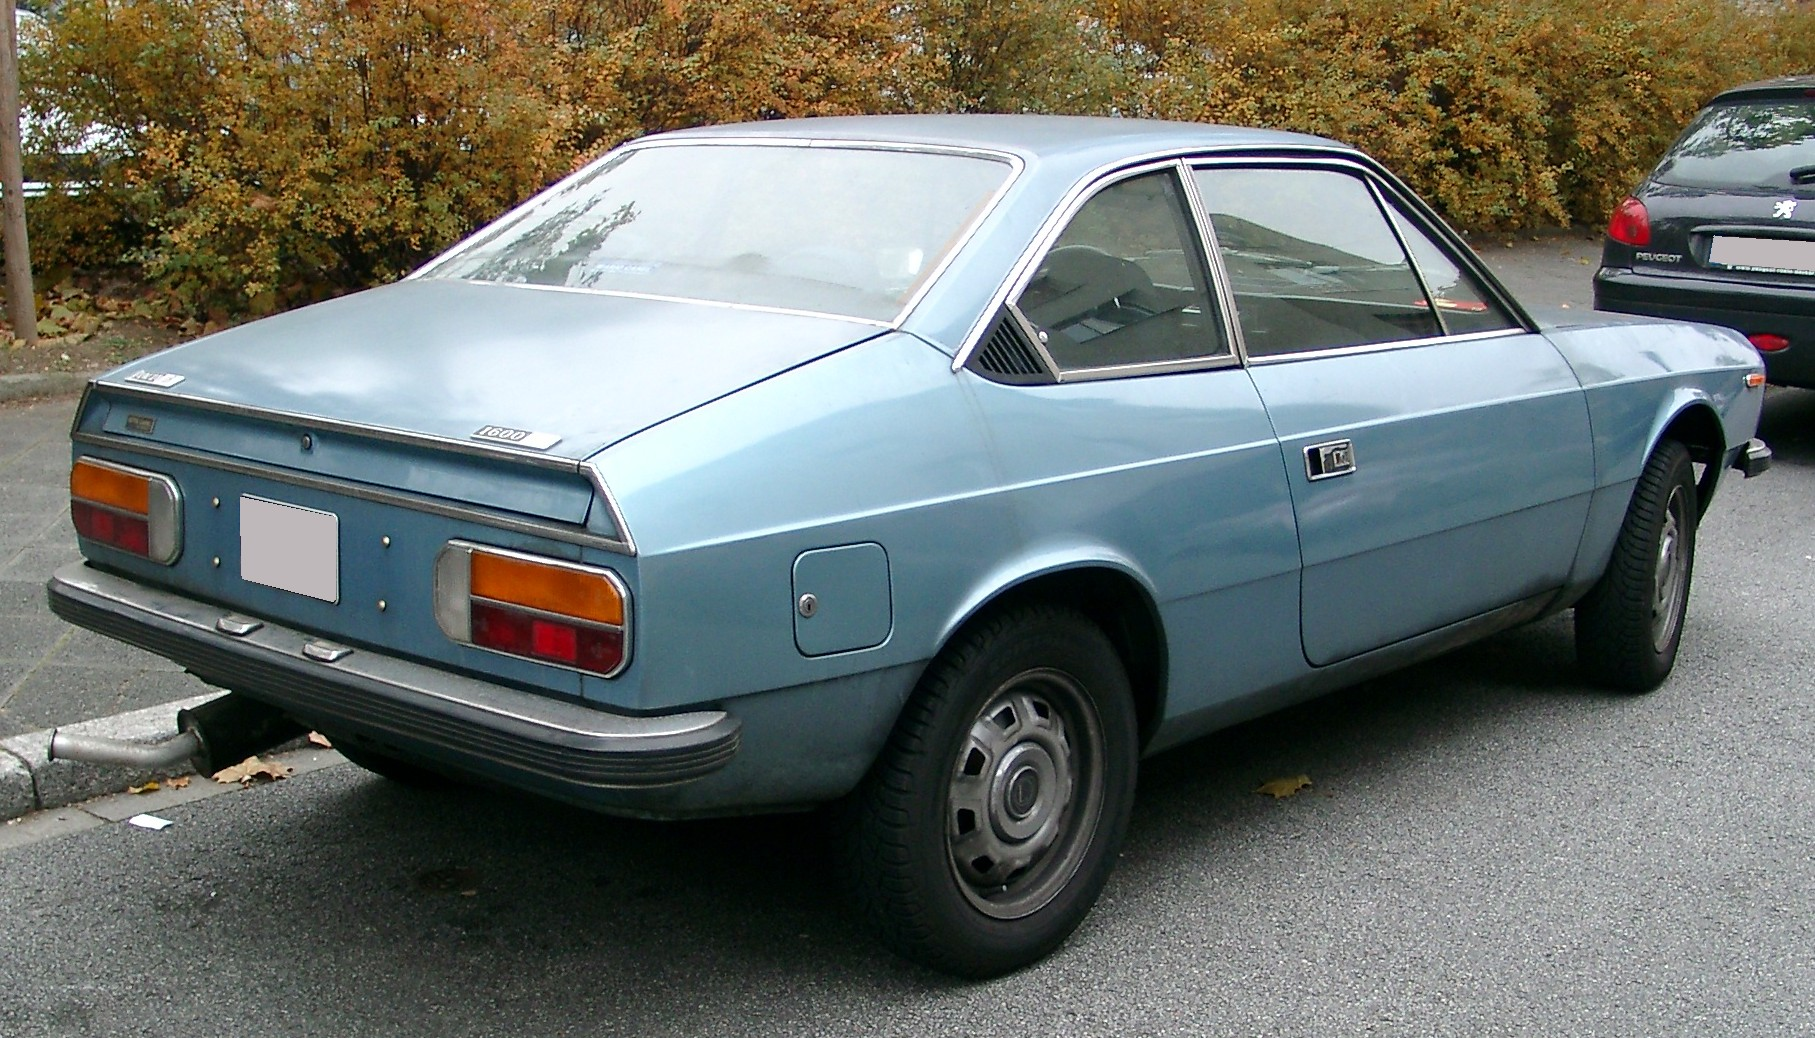 http://upload.wikimedia.org/wikipedia/commons/d/d3/Lancia_Beta_1600_Coupe_rear_20071102.jpg